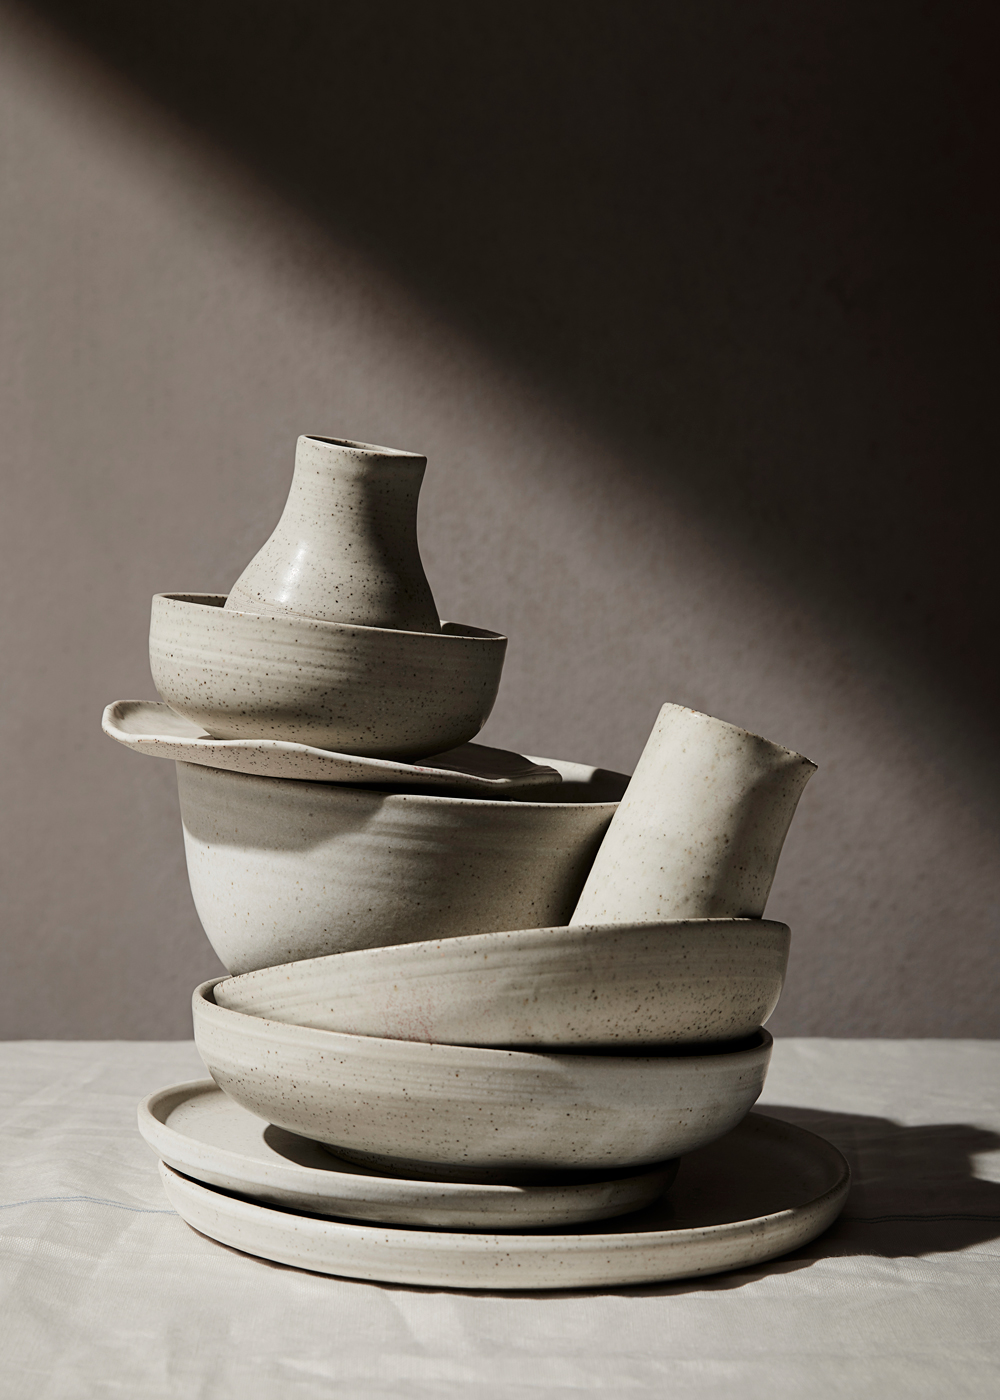 stacked pottery on linen kirsty owen lifestyle photography